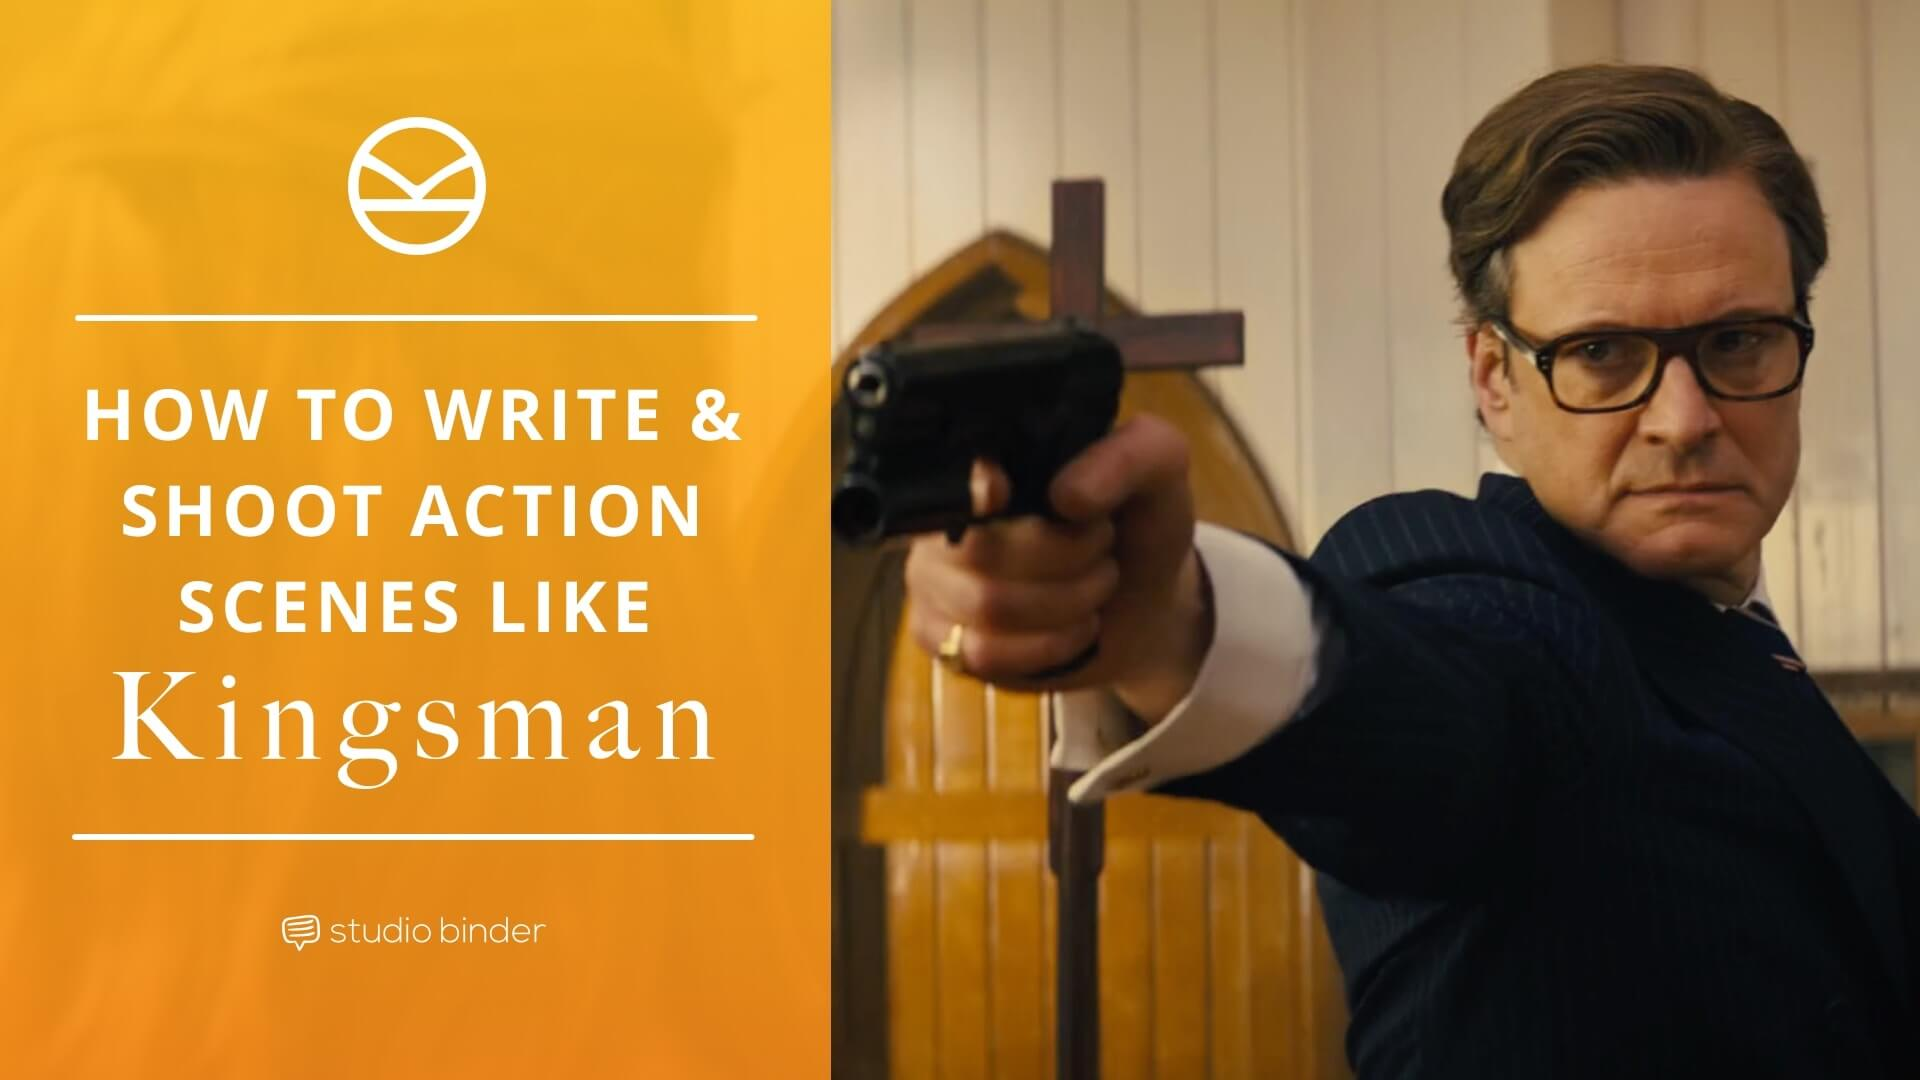 How To Write And Shoot Action Scenes Like Kingsman